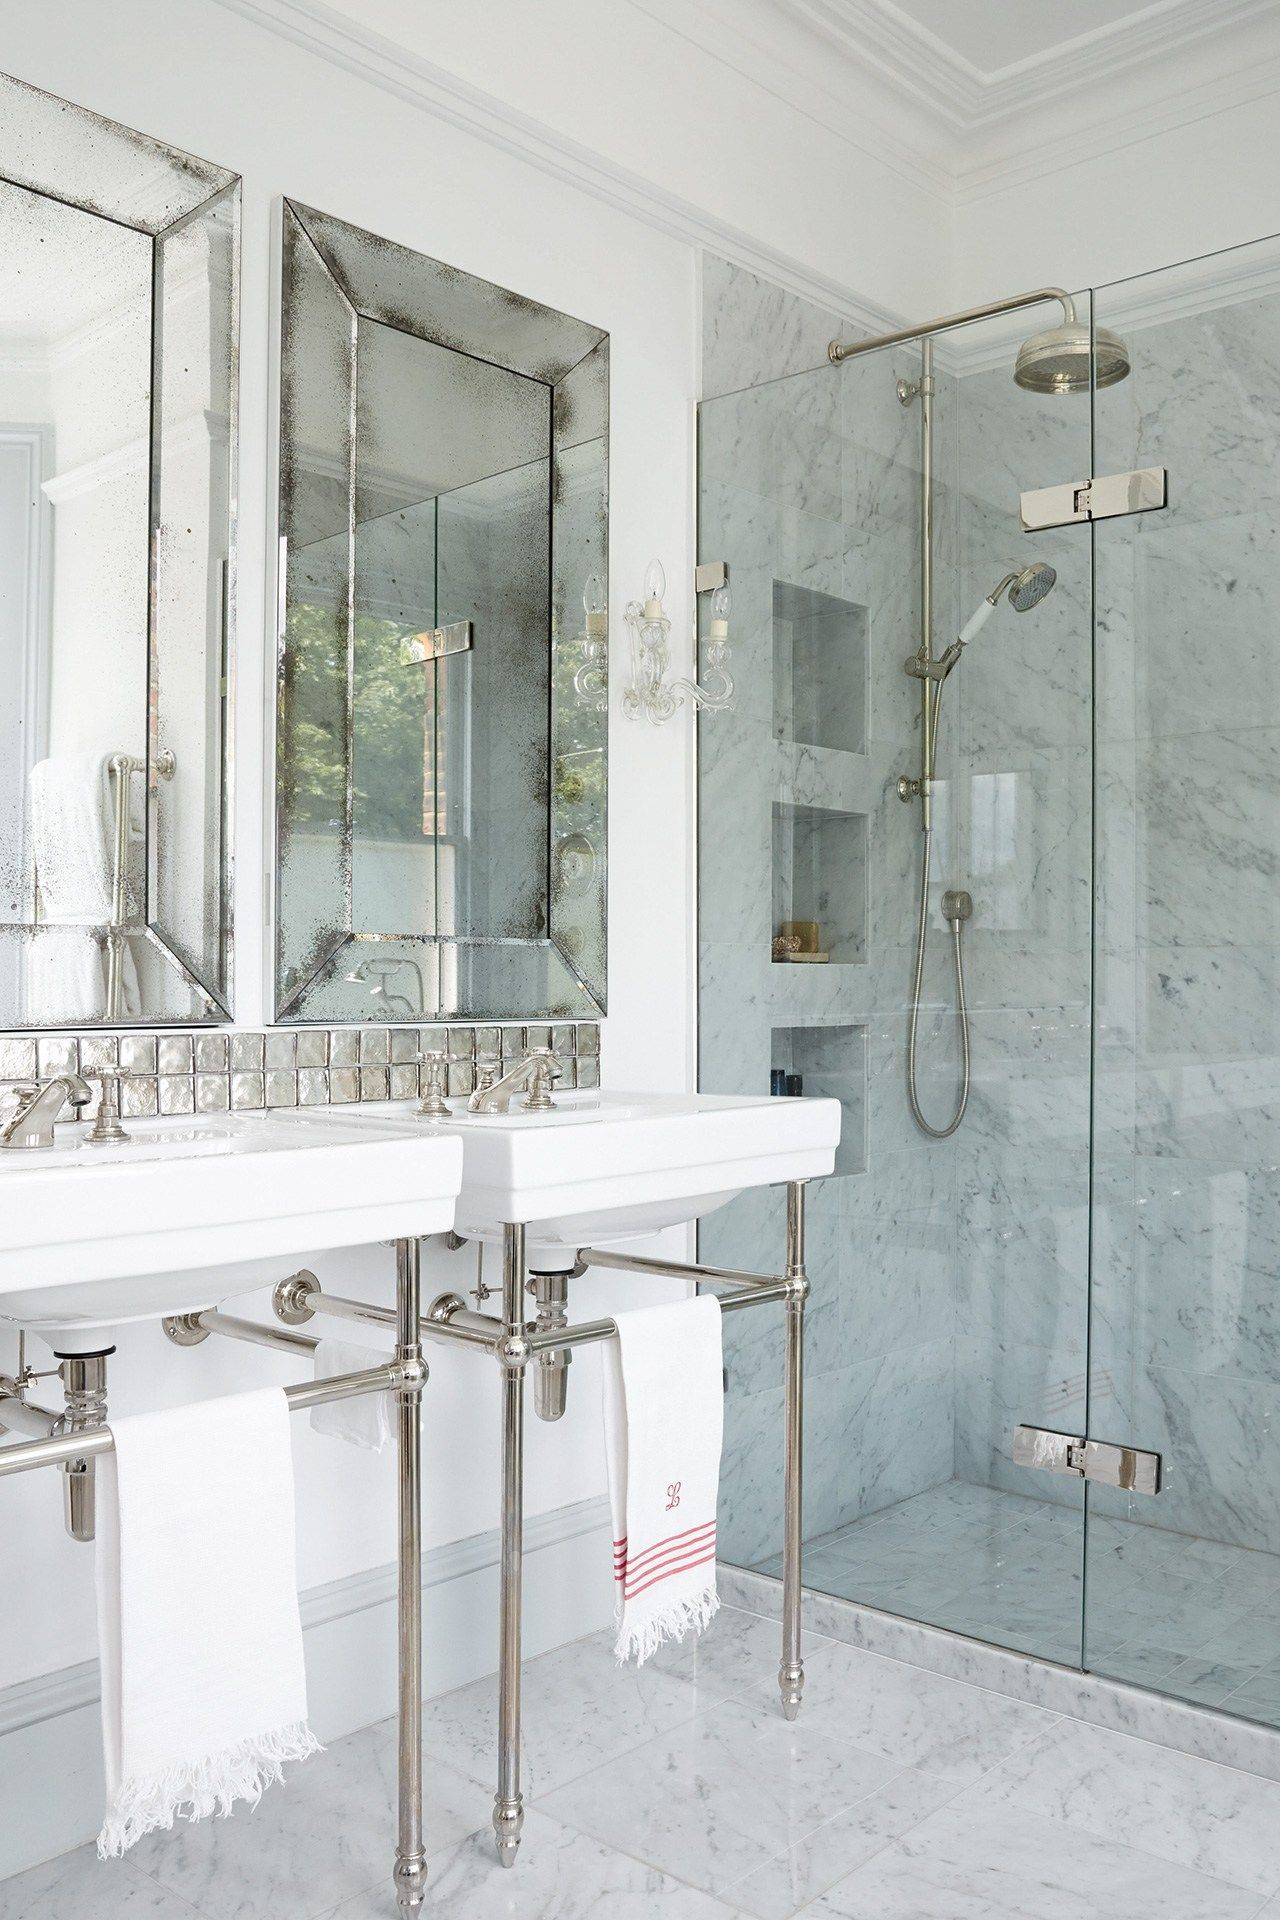 See all our small bathroom design ideas on HOUSE by House & Garden ...